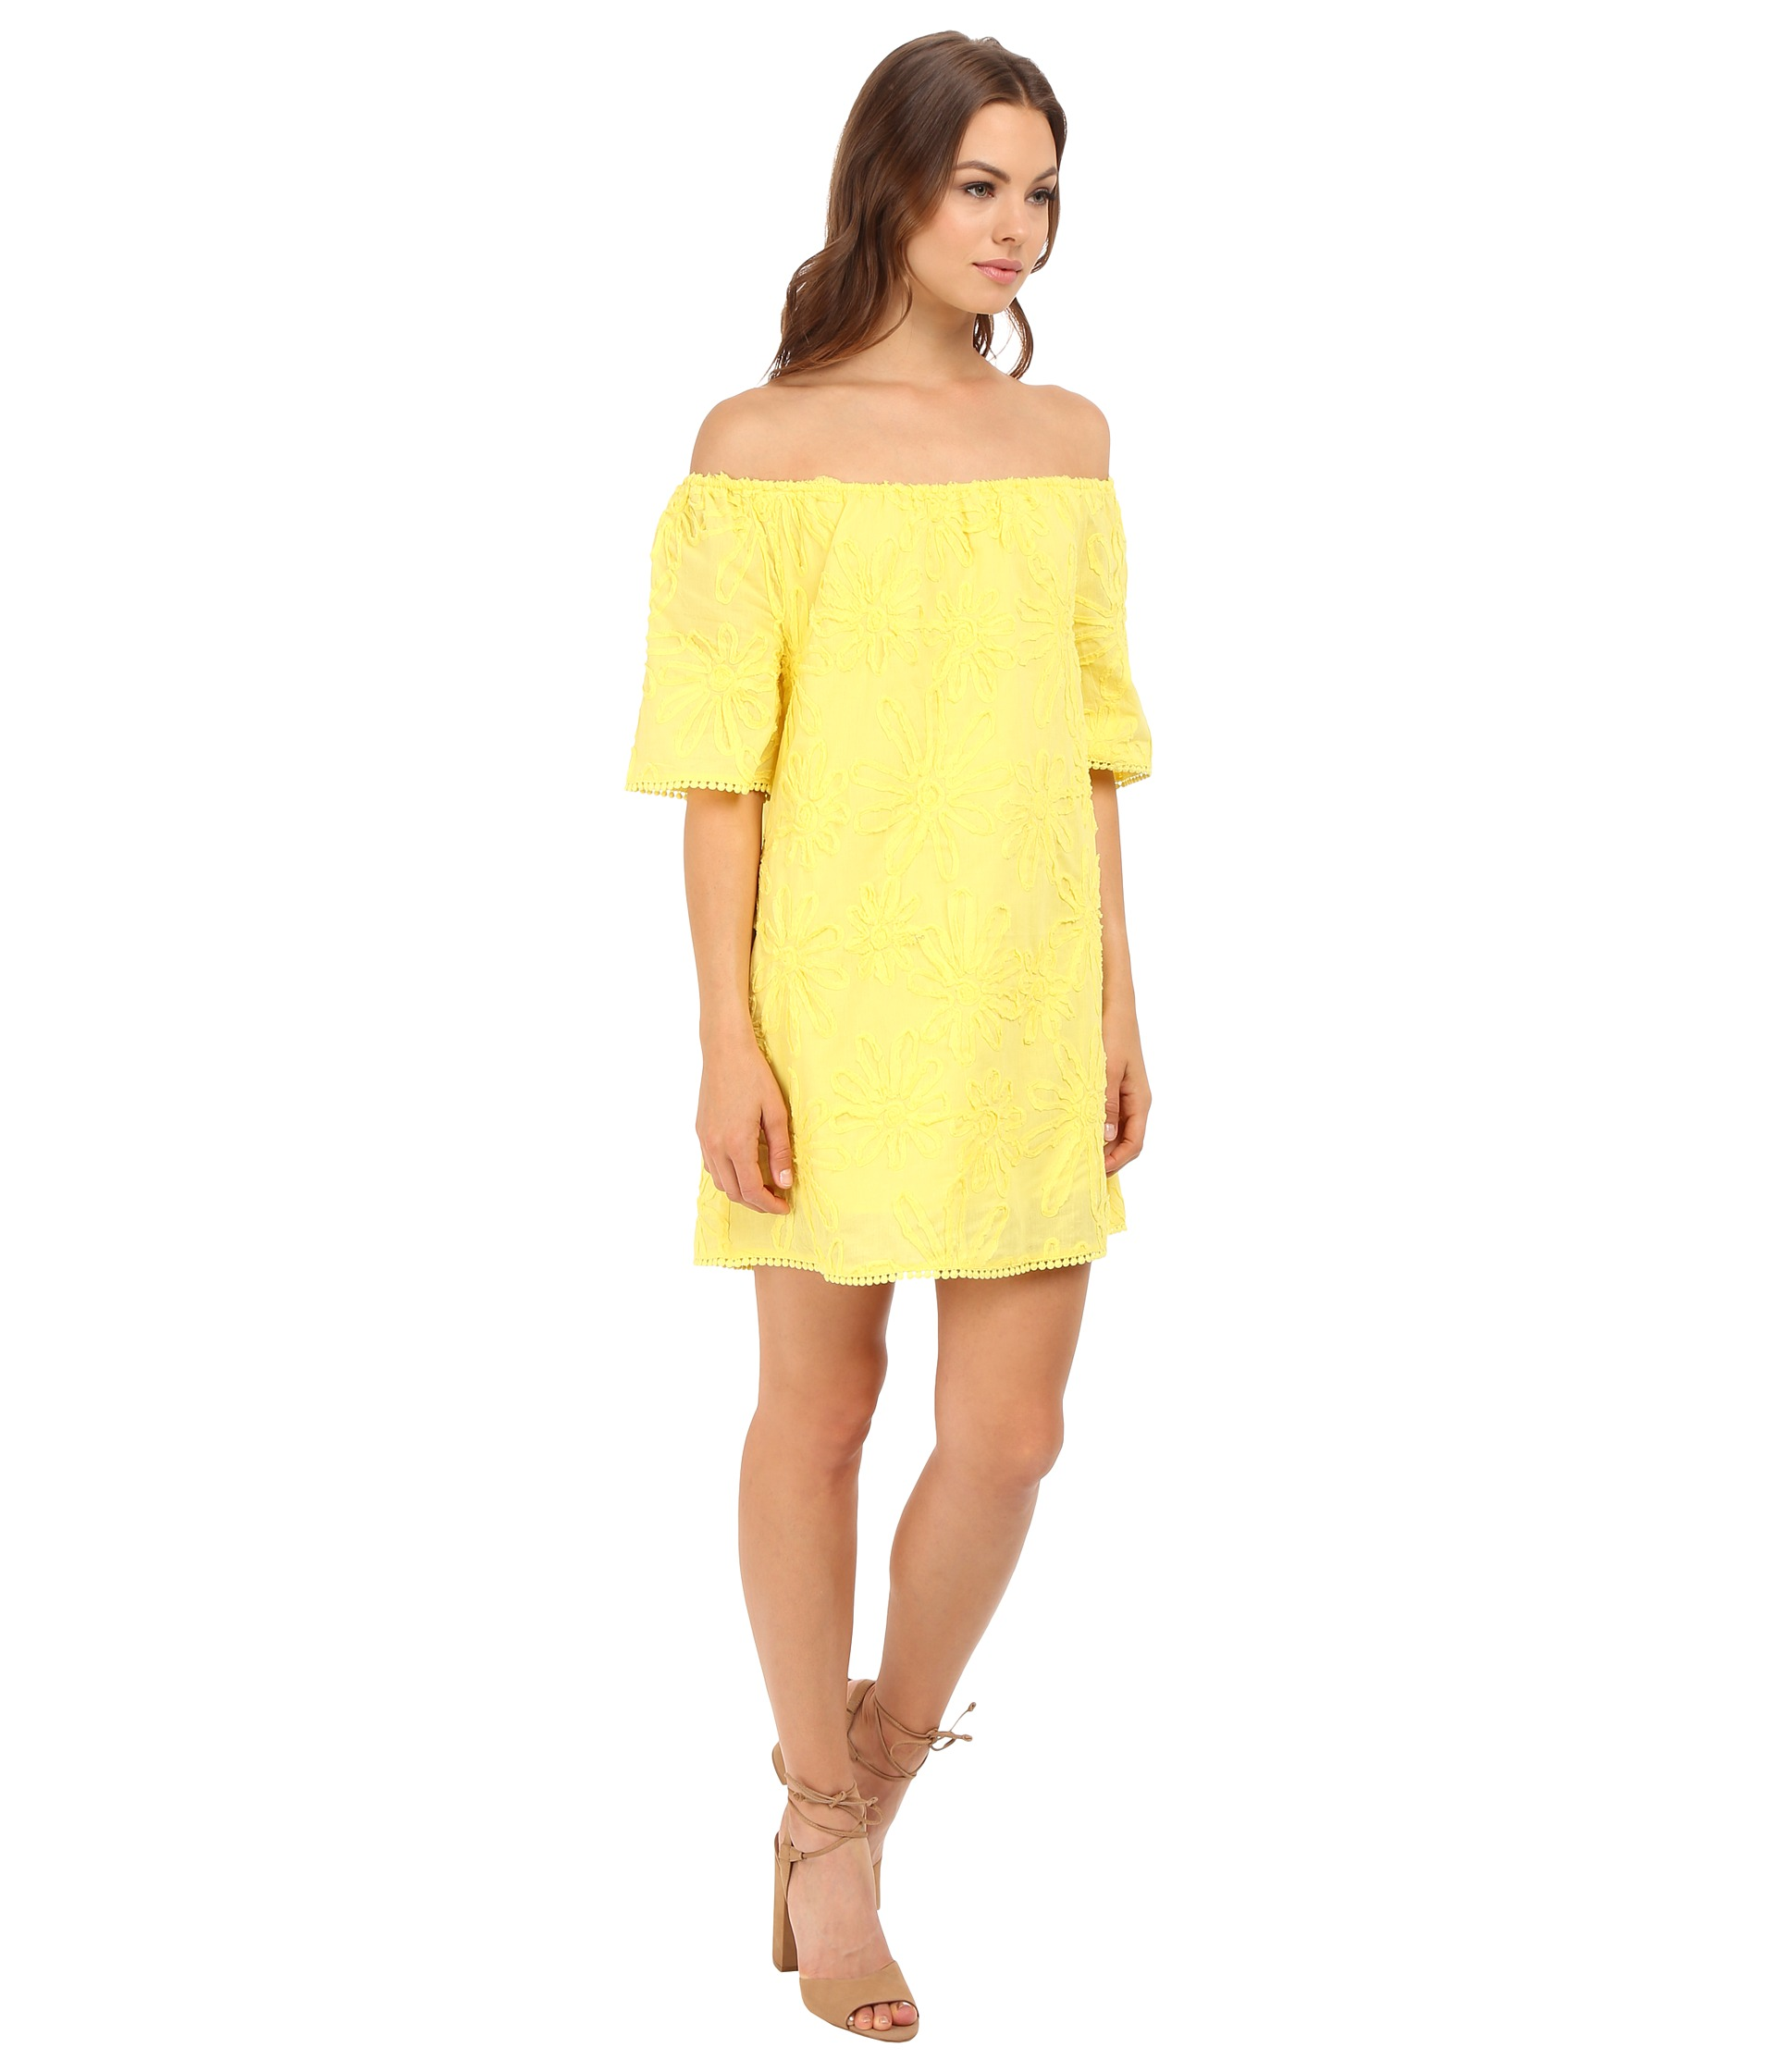 yellow dress 6pm official site